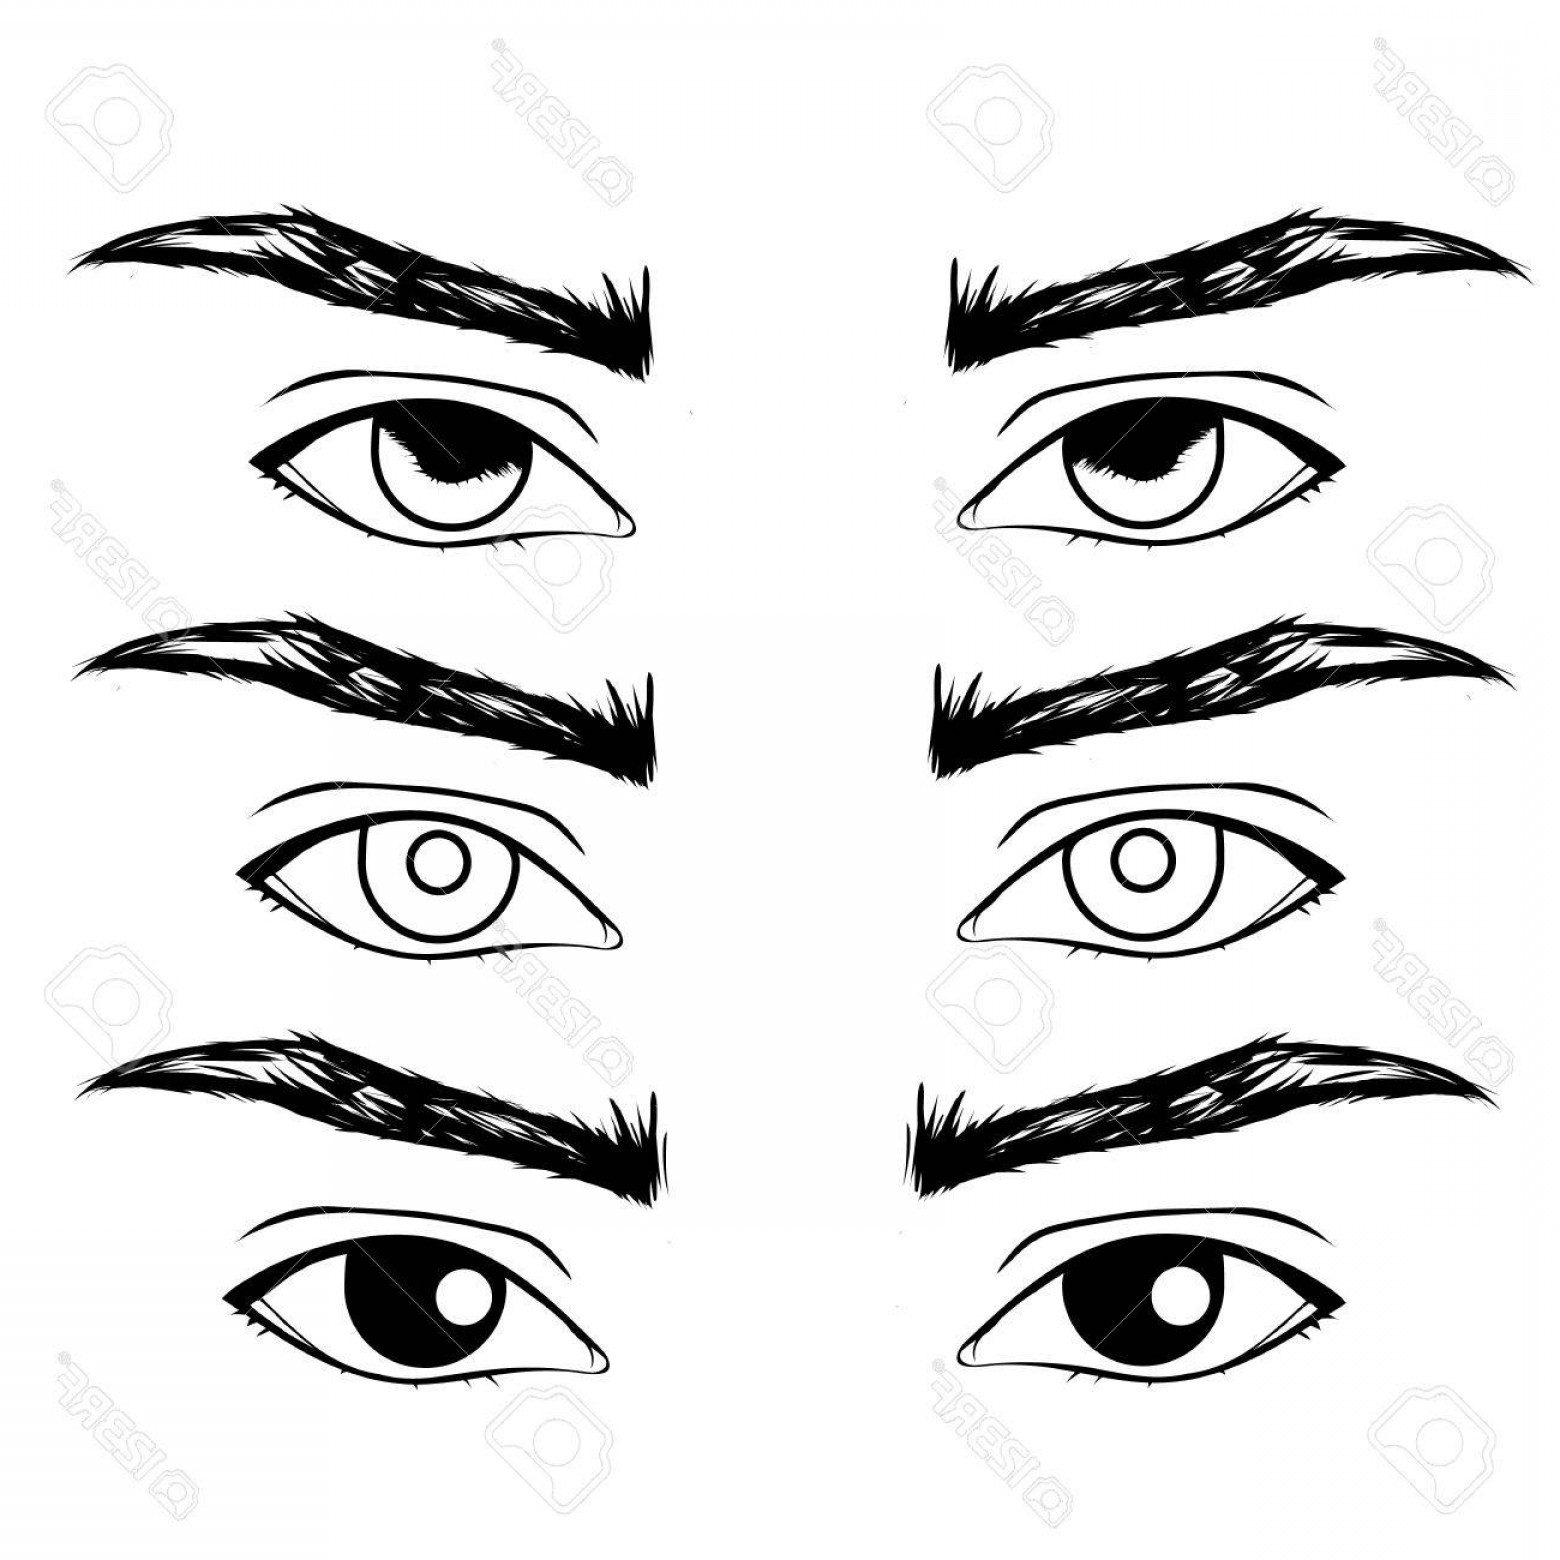 Male Eyes Vector Graphic: Photostock Vector Hand Drawn Men S Eyes